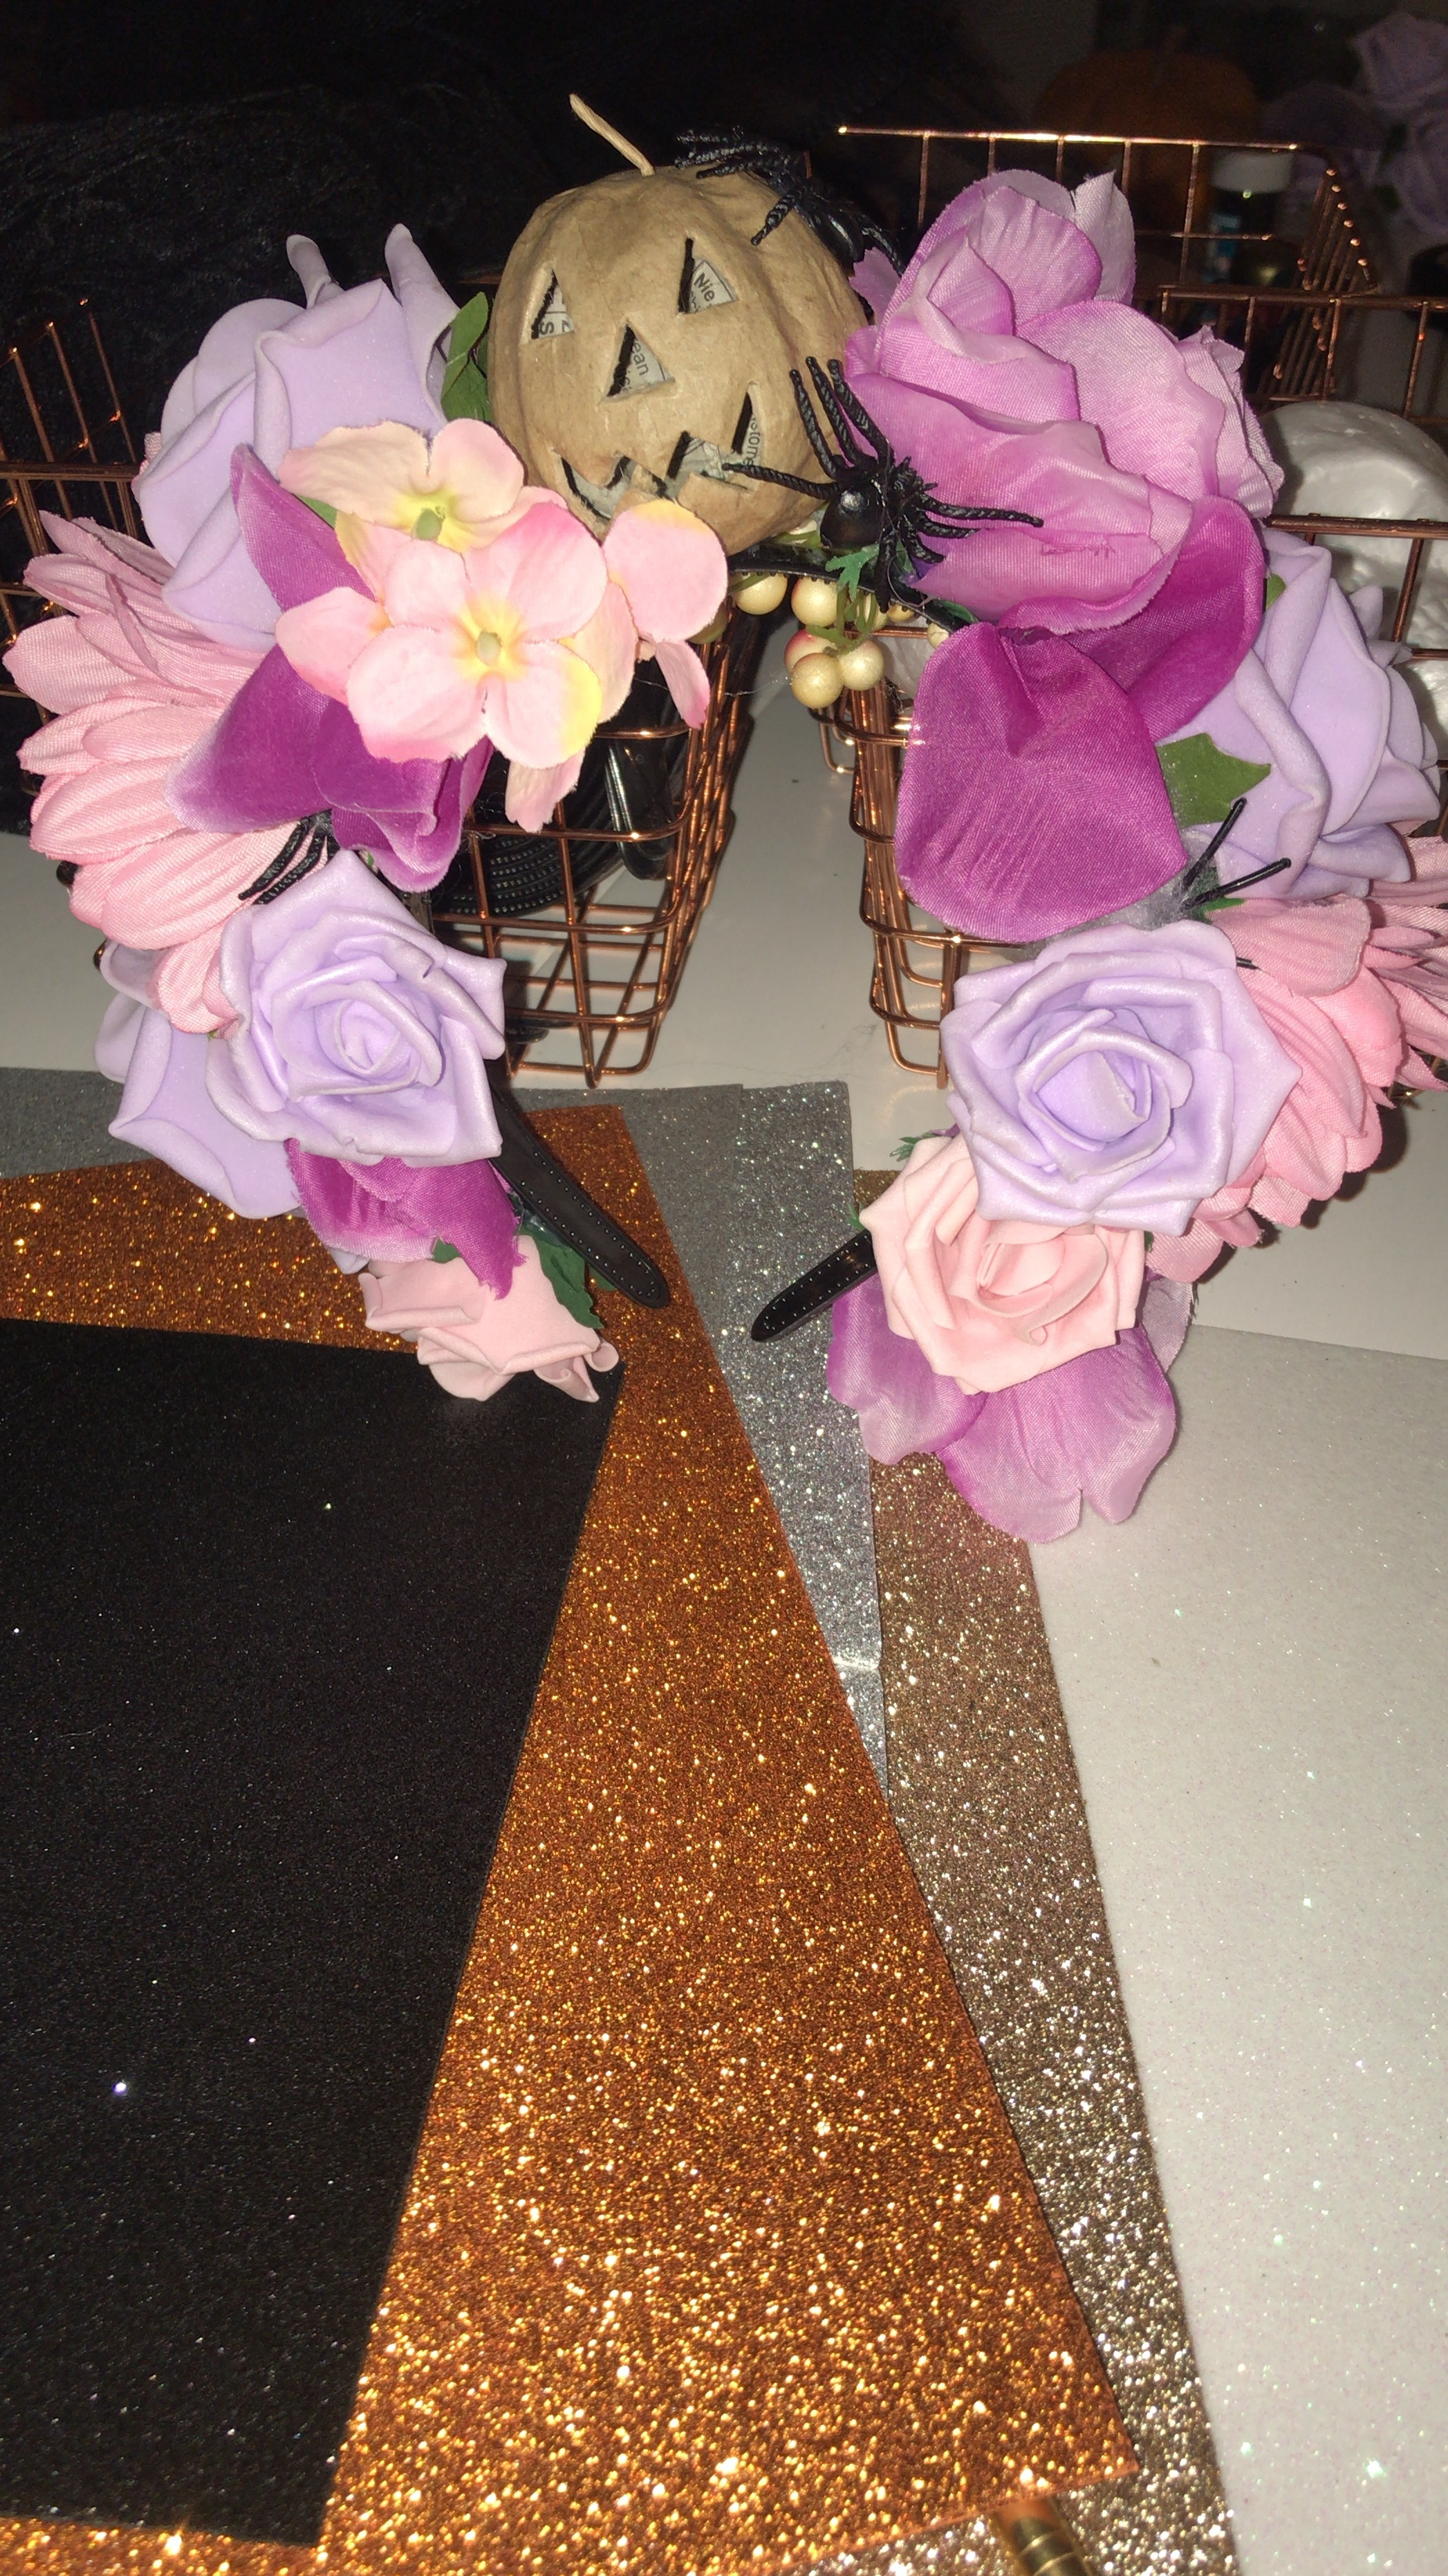 I attached the flowers to the headband using the glue gun and then added in a pumpkin decoration and a couple creepy crawlies to make it more…Halloween-y.